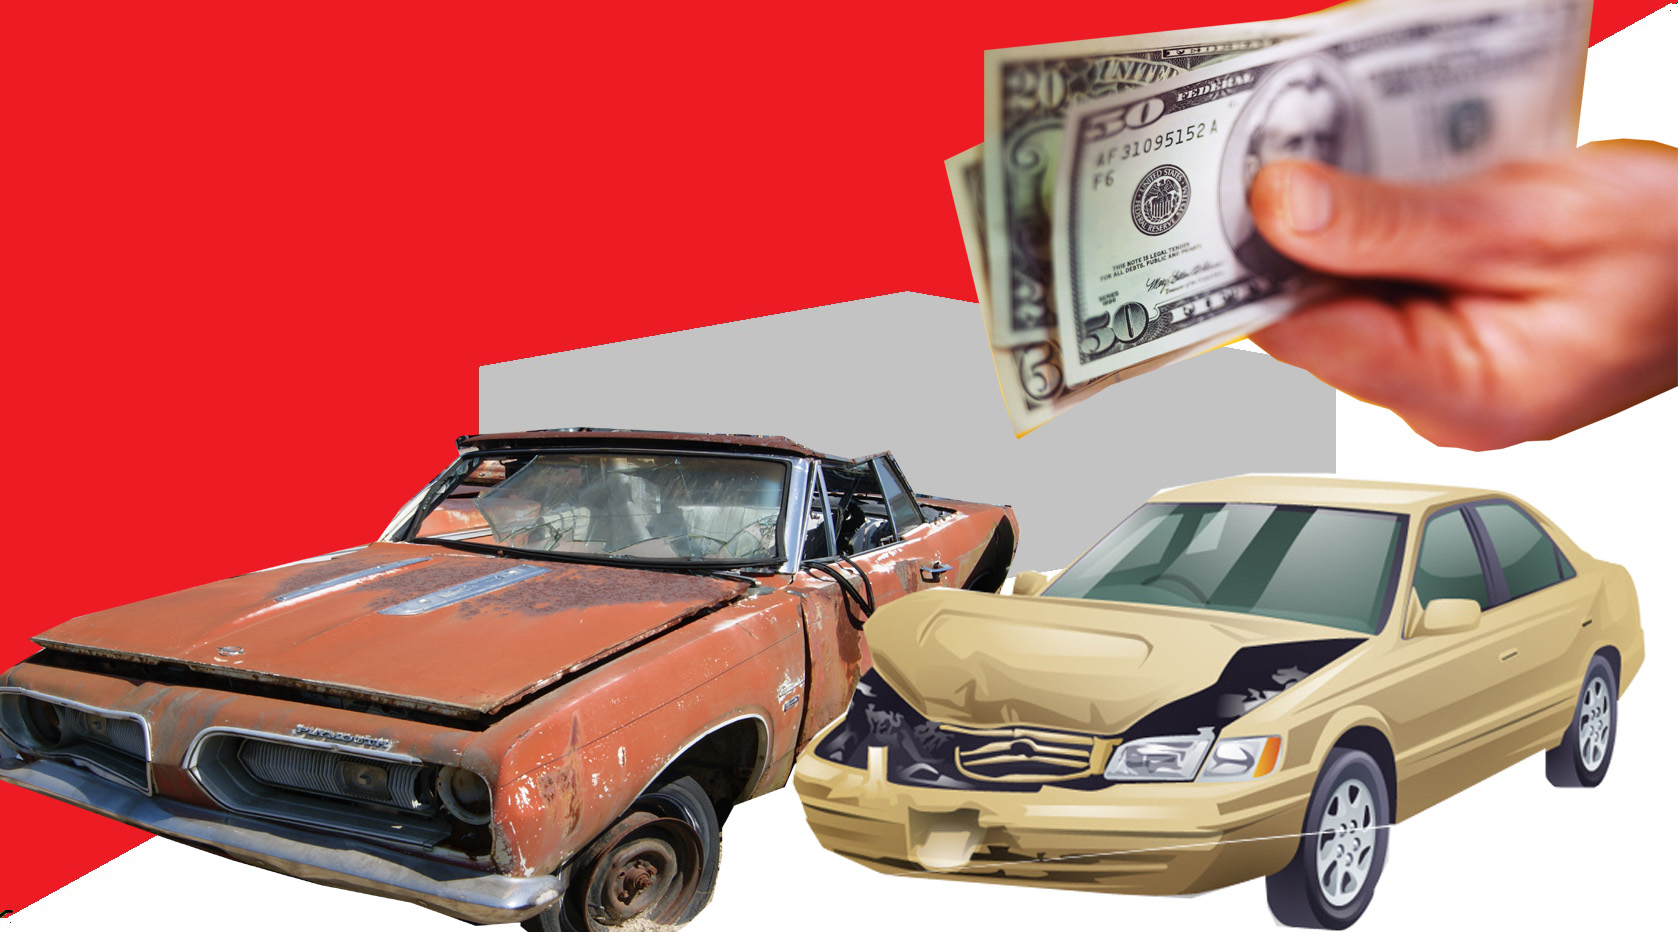 easy way sell a junk car for cash 1888 pay cash for cars. Black Bedroom Furniture Sets. Home Design Ideas